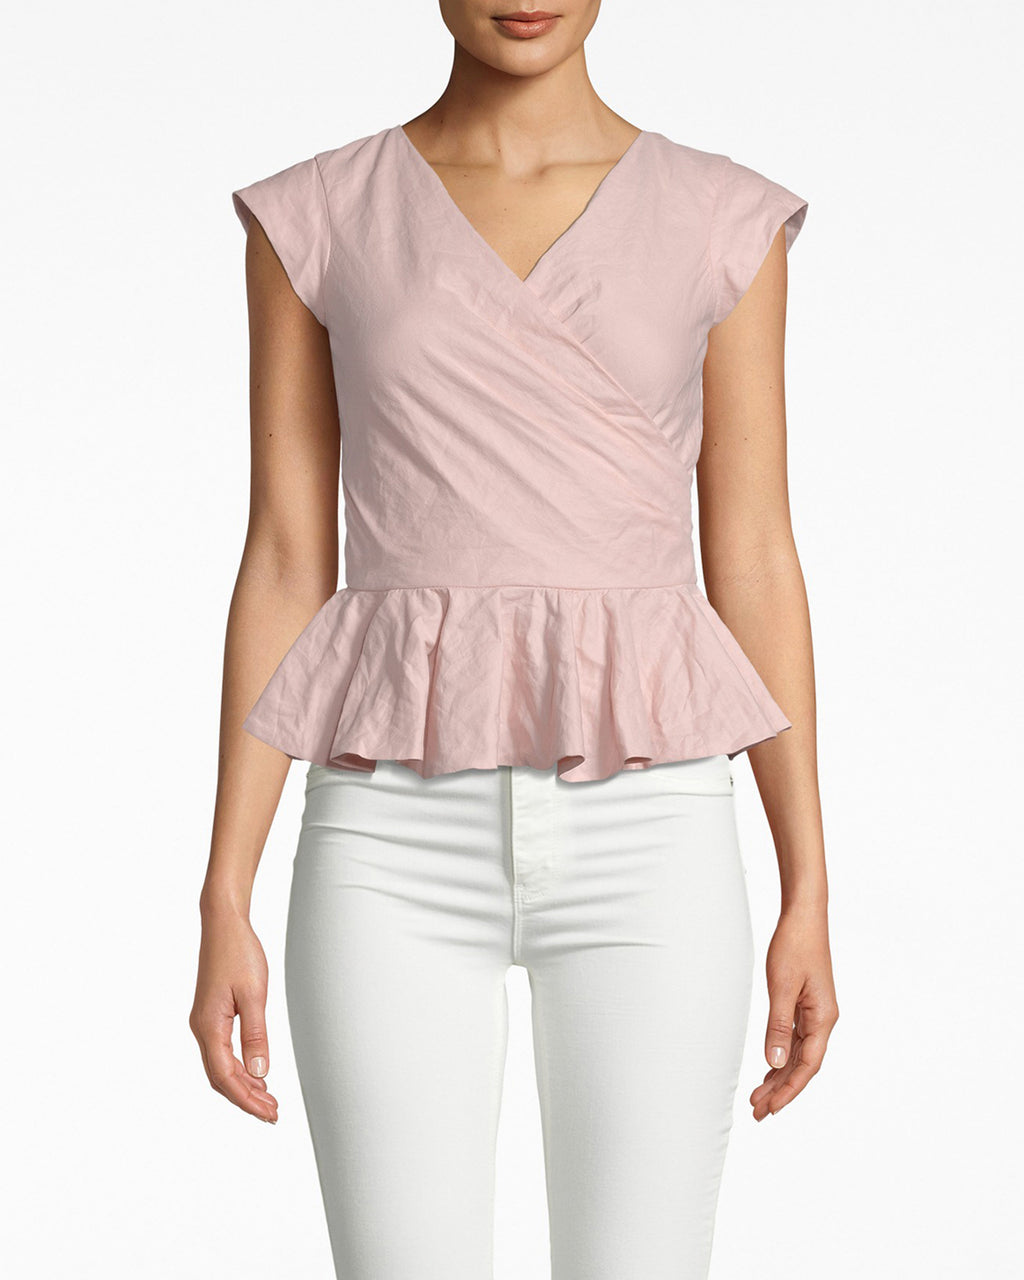 BD20126 - COTTON METAL PEPLUM TOP - tops - shirts - PRETTY IN PINK. CRAFTED IN OUR SIGNATURE COTTON METAL, THIS TOP HAS A SLIGHT SHIMMER THAT MAKES IT ALL THE MORE APPEALING. A TAILORED FIT WITH CAP SLEEVES AND A PEPLUM FLARE, THIS TOP HIGHLIGHTS YOUR SILHOUETTE WITHOUT SHOWING TOO MUCH SKIN.